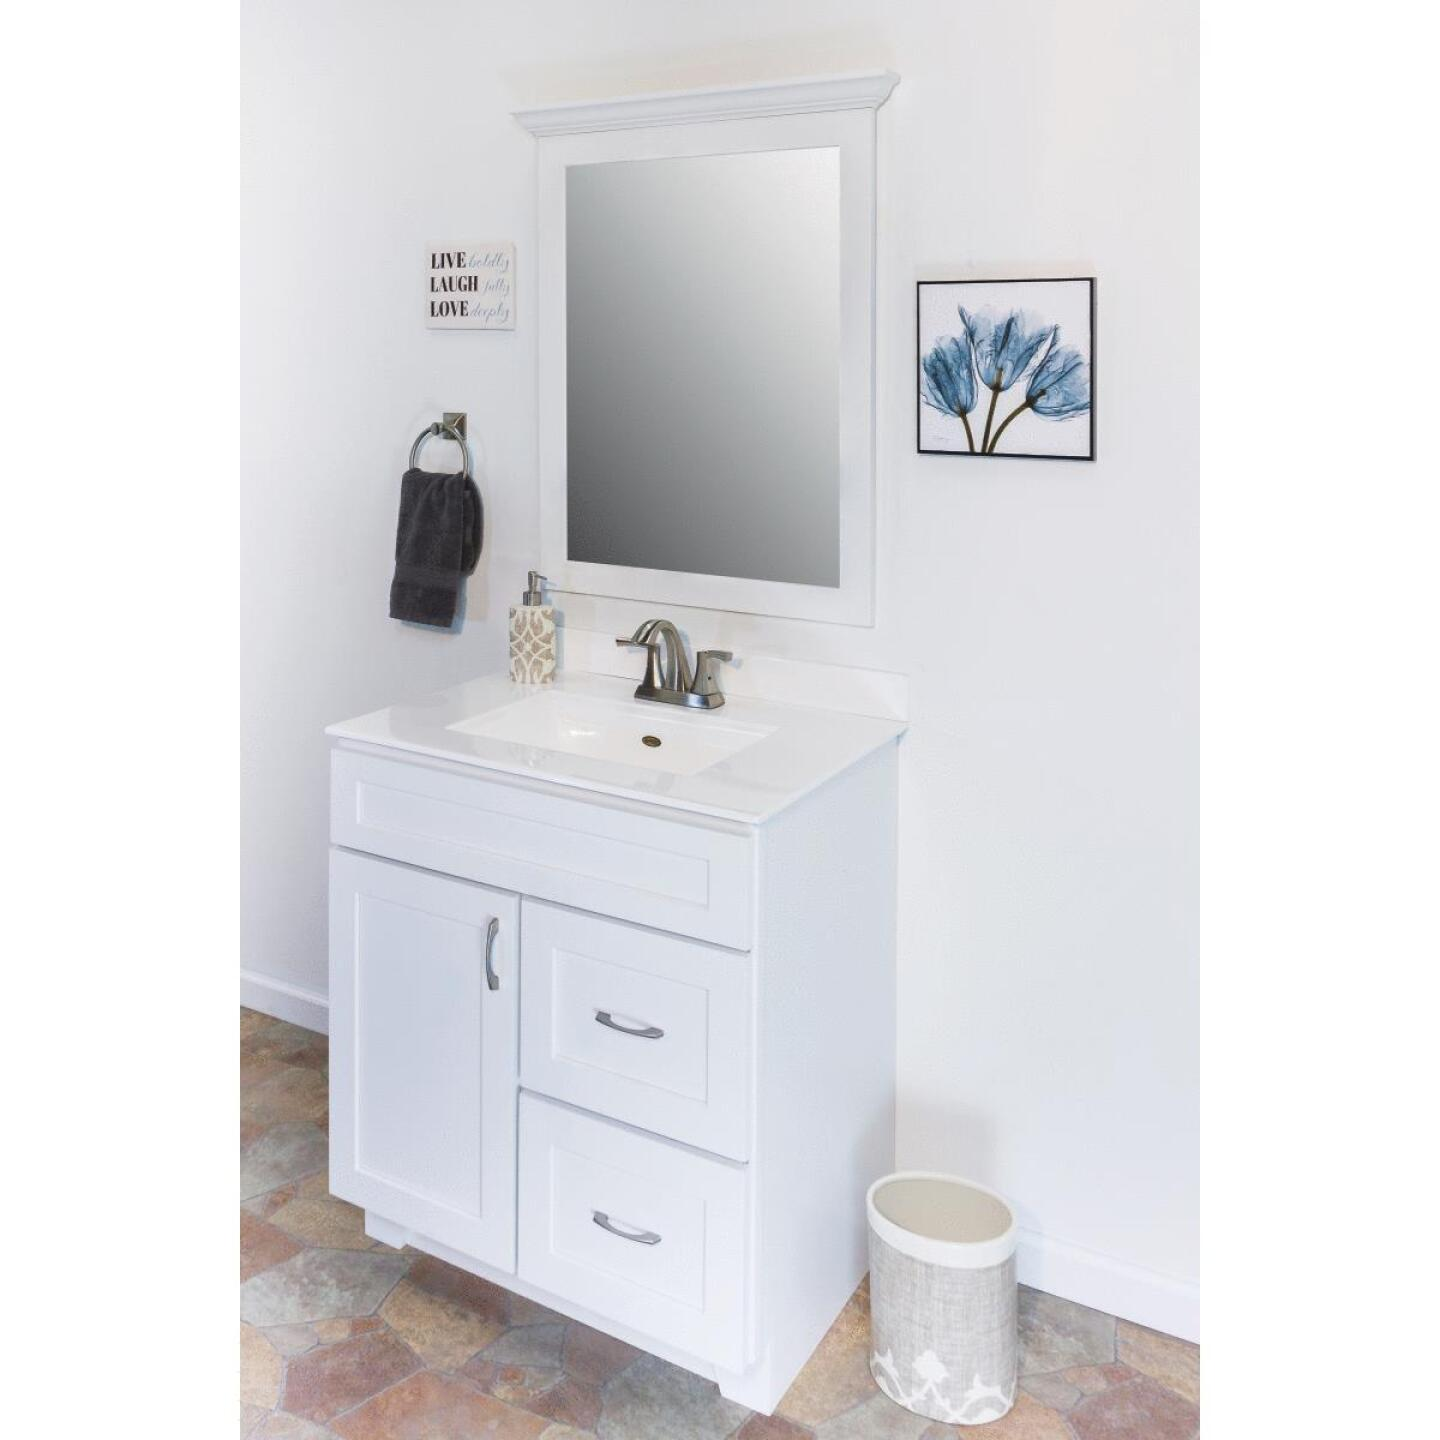 CraftMark Shaker Retreat White 30 In. W x 34 In. H x 21 In. D Vanity Base, 1 Door/2 Drawer Image 6